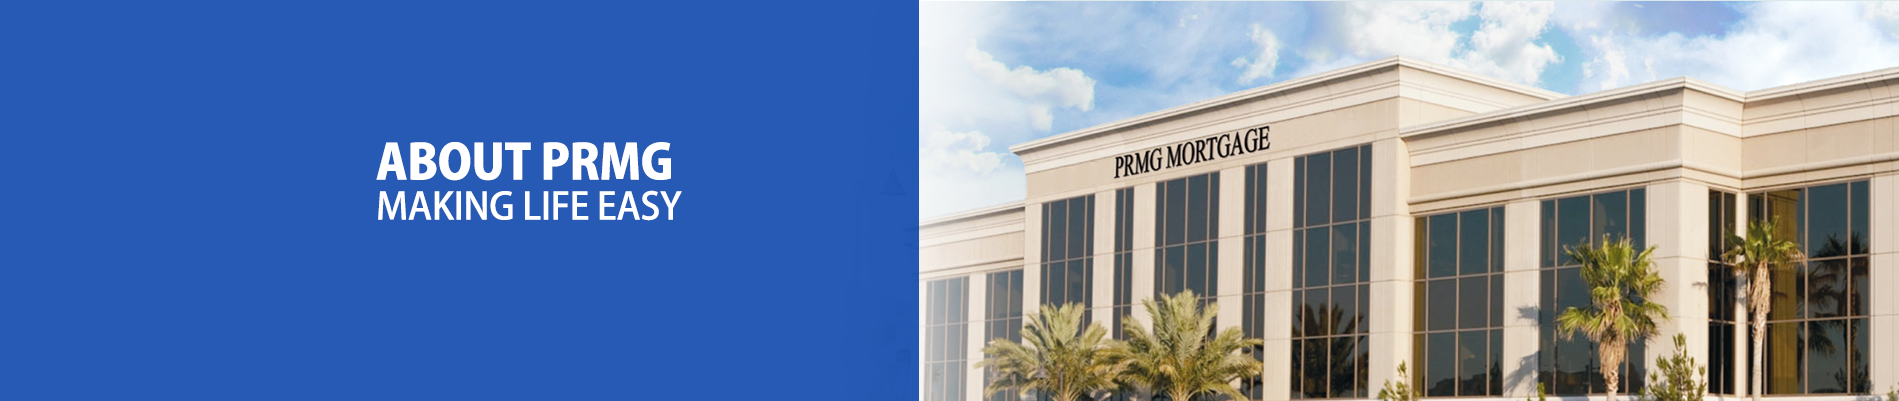 About PRMG, Making Life Easy Graphic Banner